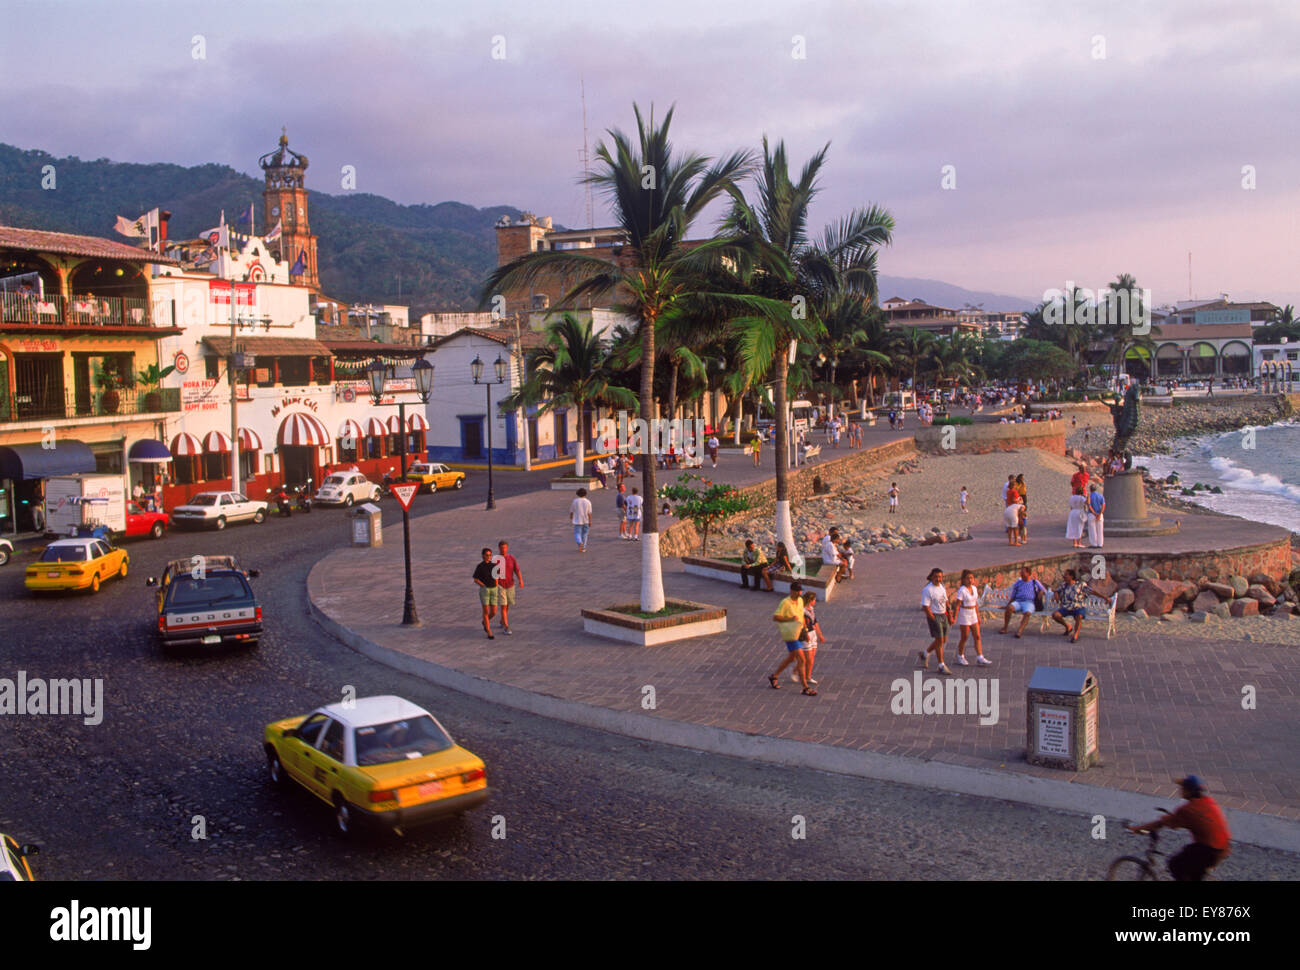 Guadalupe Church bell tower and street sidewalk along beach front road in Puerto Vallarta, Mexico - Stock Image